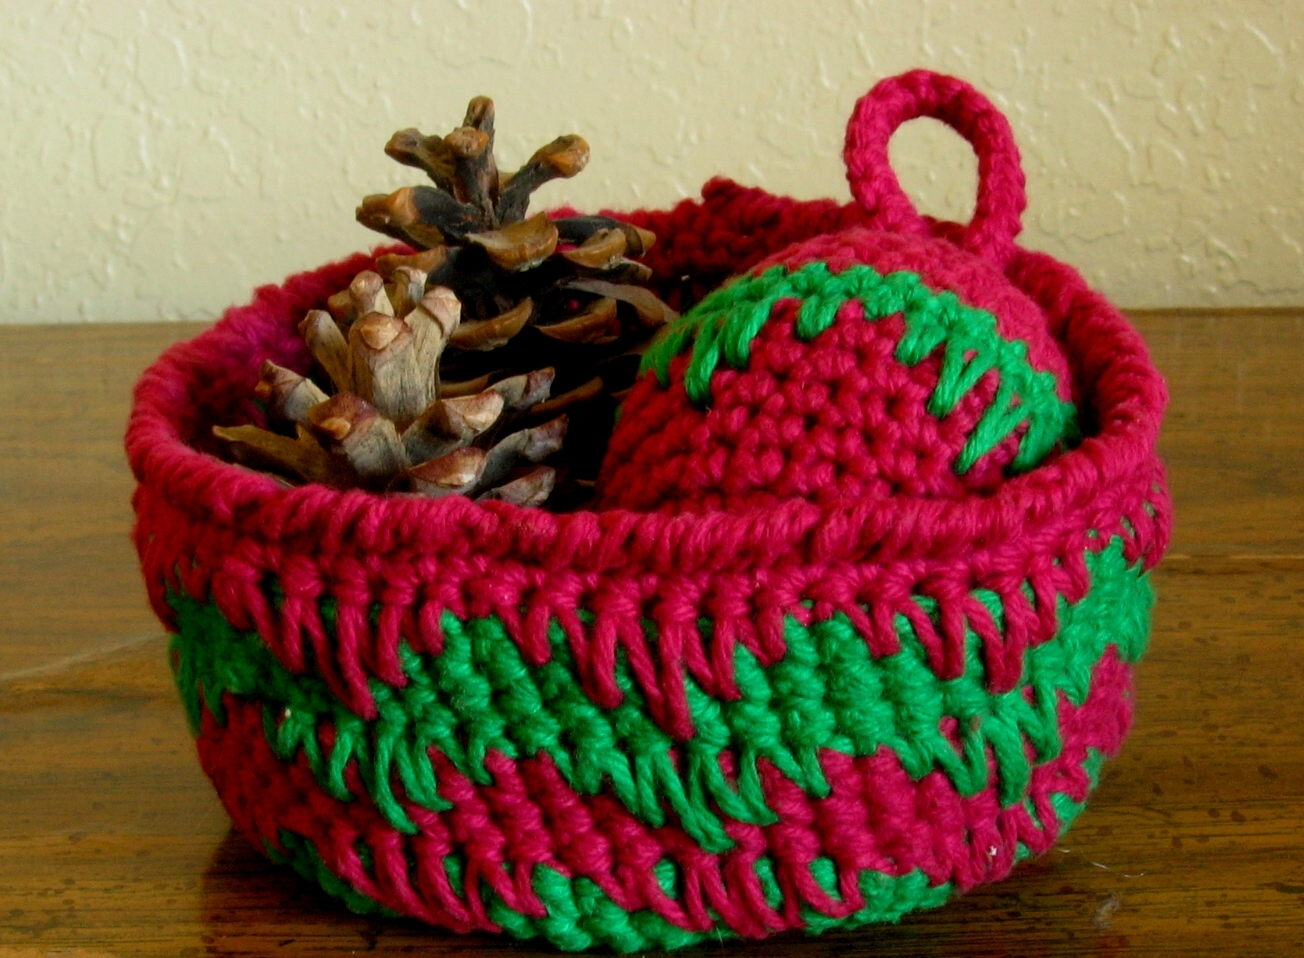 Basket in spike stitch red and green w ornament and props2 rect 2984 72dpi